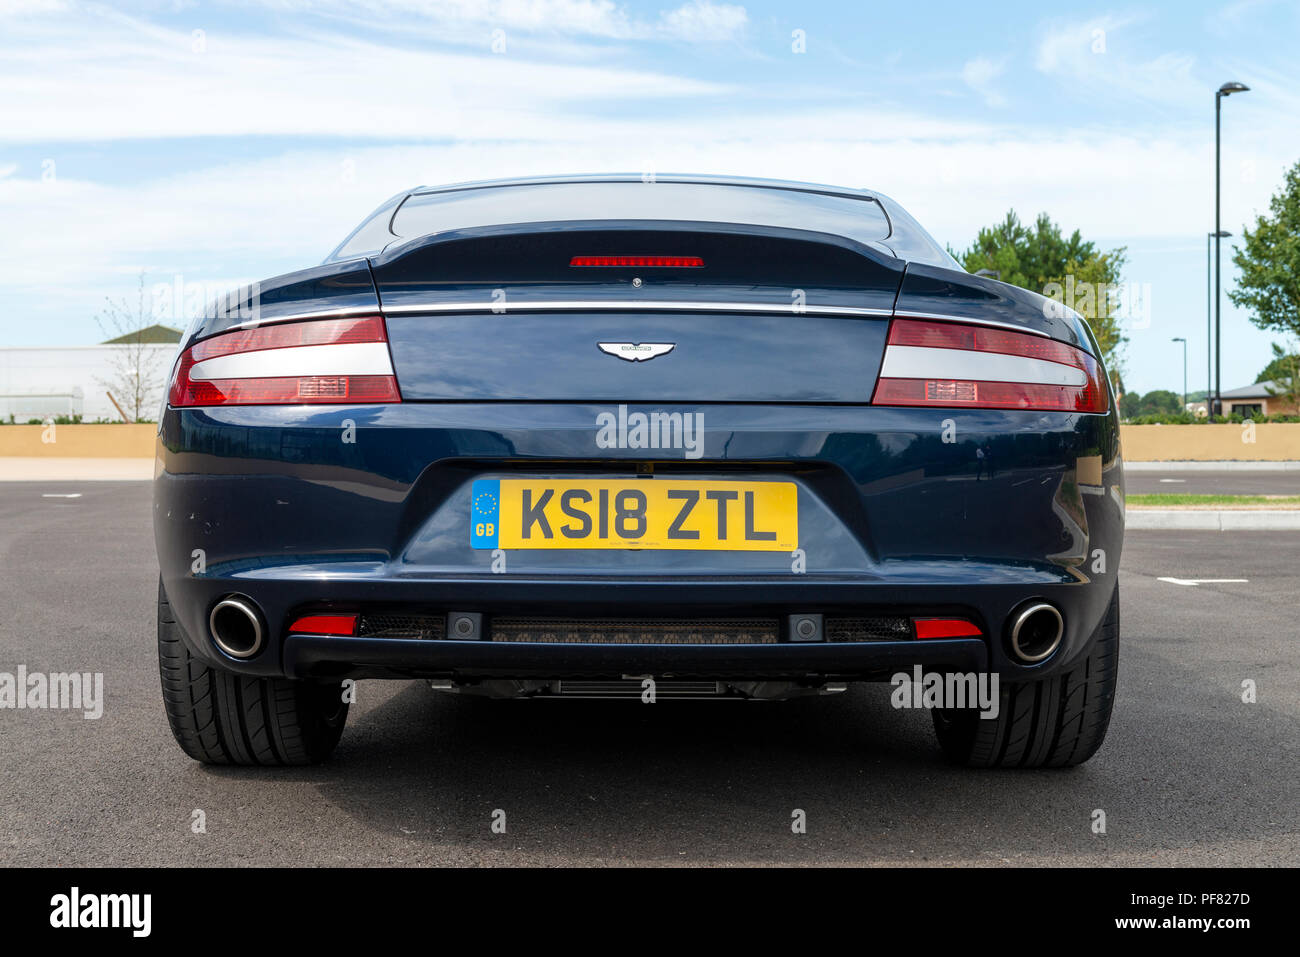 An Aston Martin Rapide S four door sports saloon car photographed at Aston Martin's new production facility at St Athan in The Vale of Glamorgan. - Stock Image